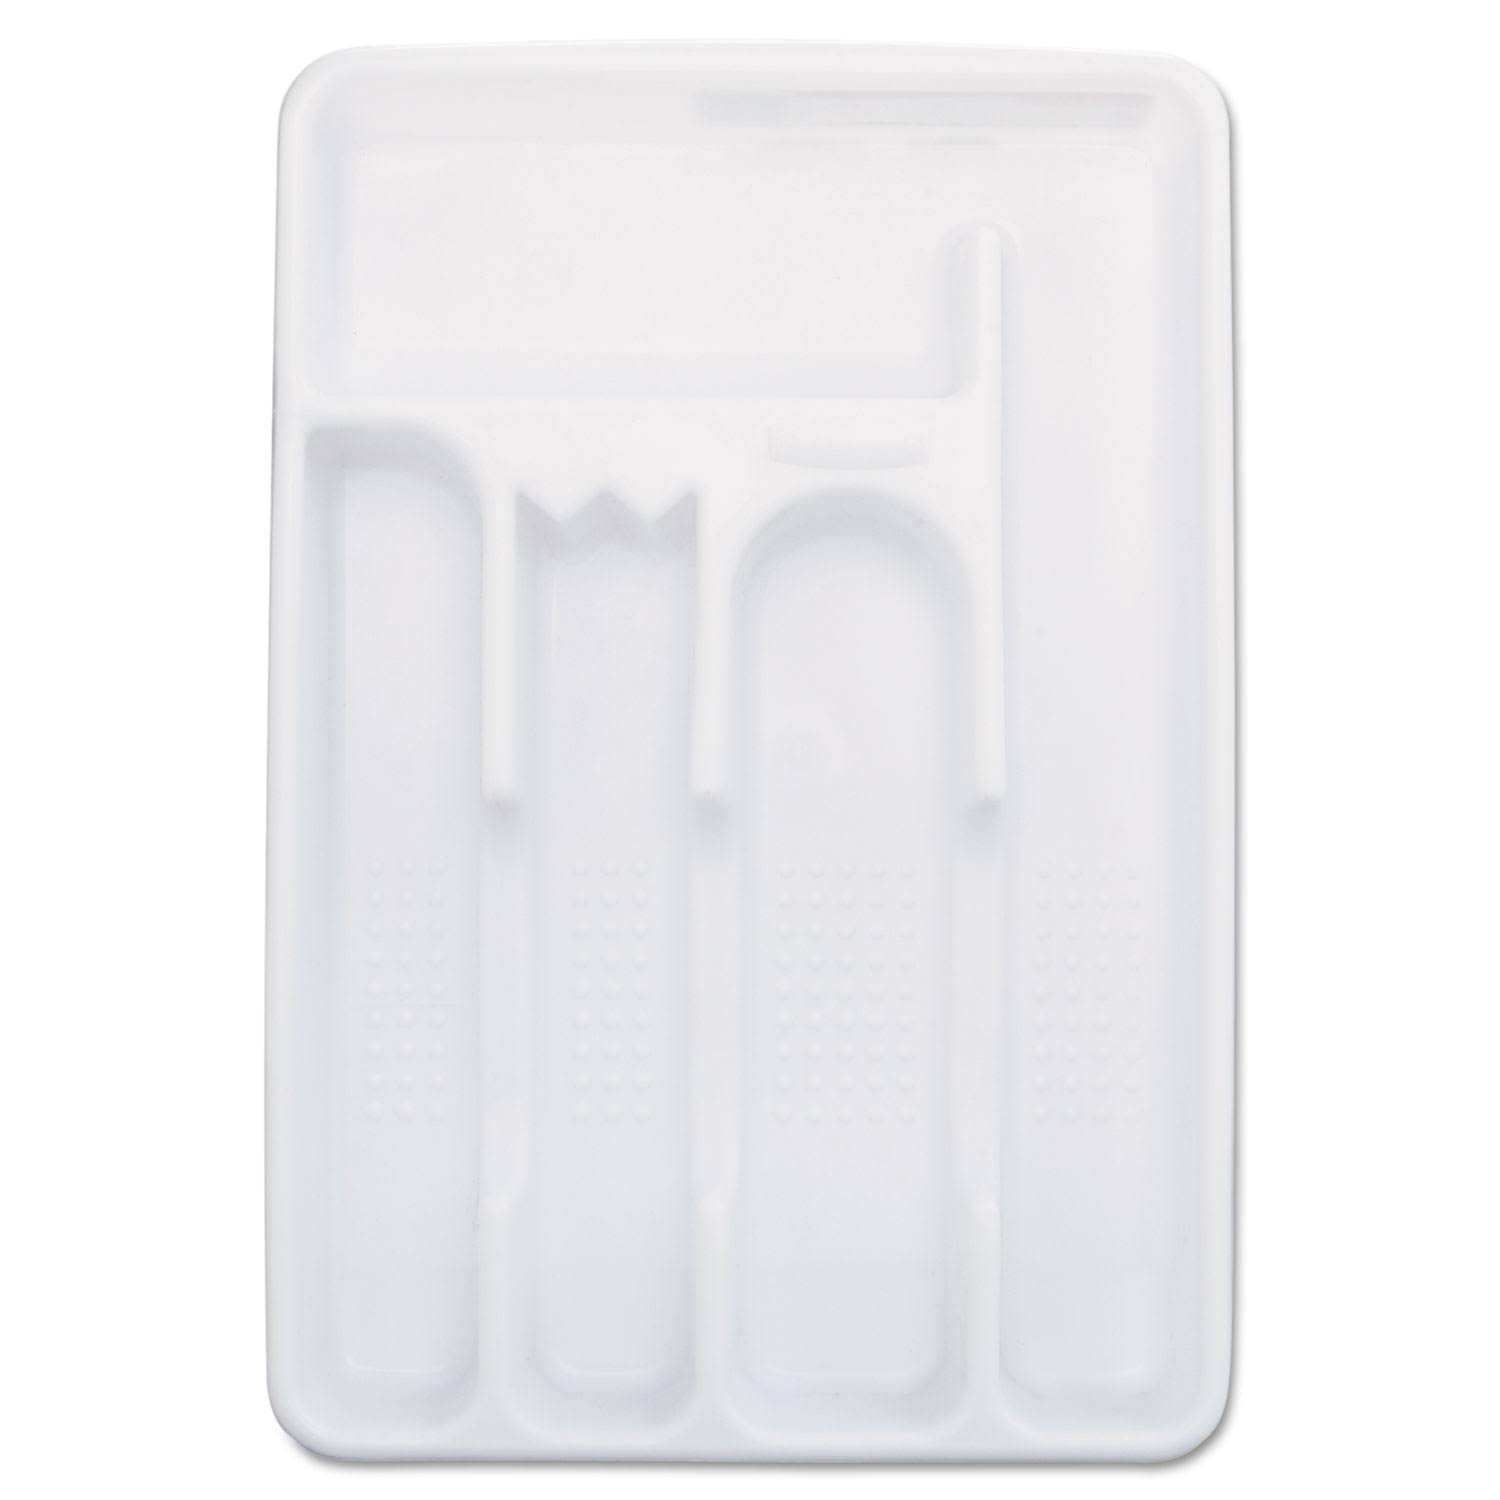 Rubbermaid Cutlery Tray, Small, White